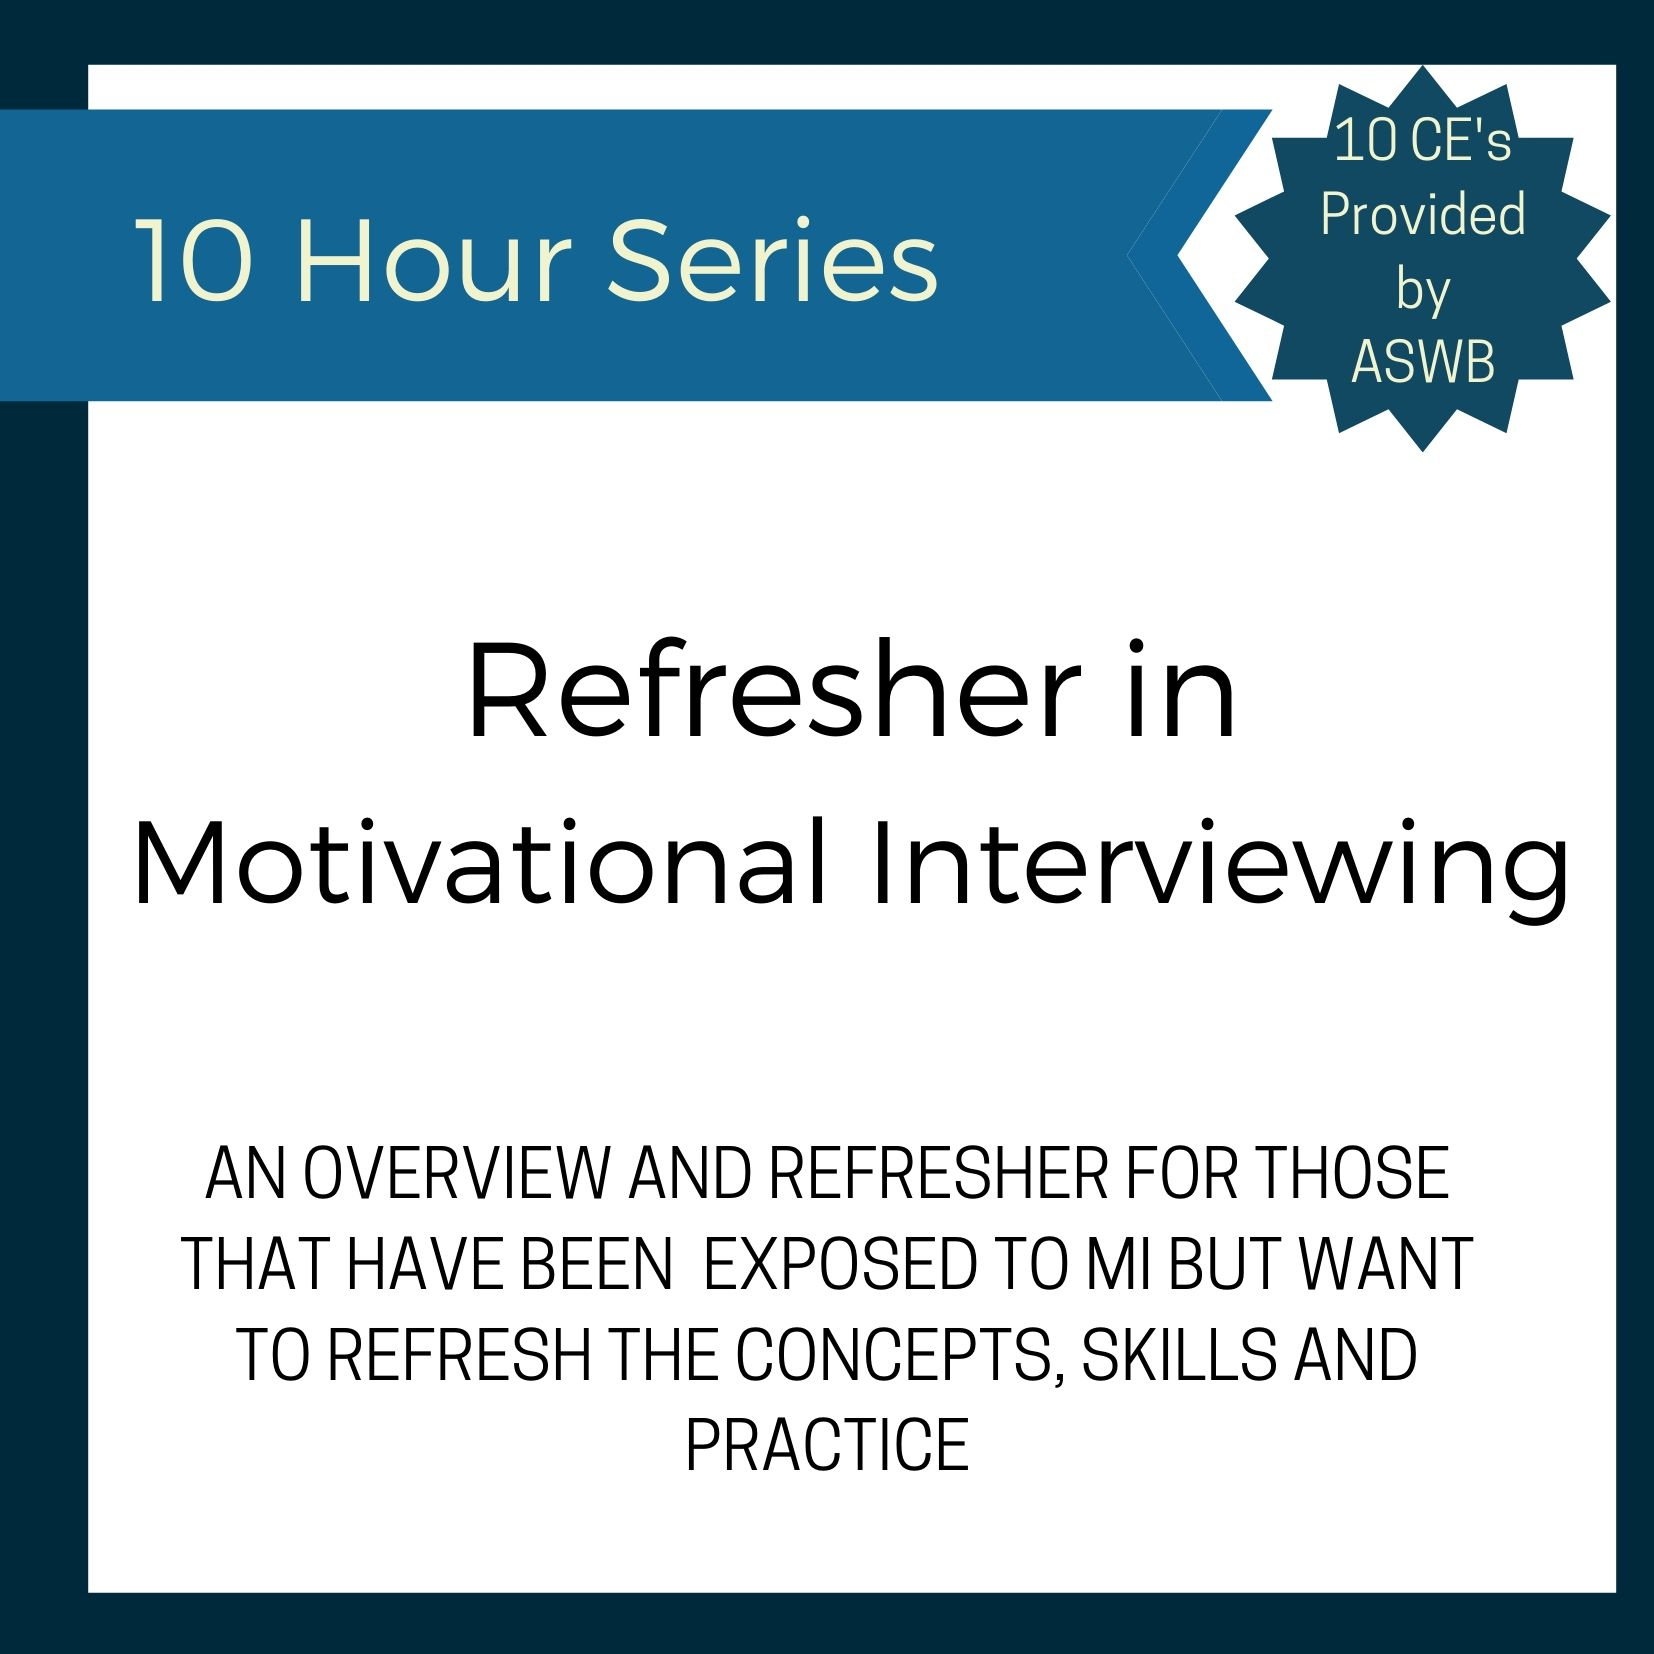 Refresher Motivational Interviewing Series 4 13 20